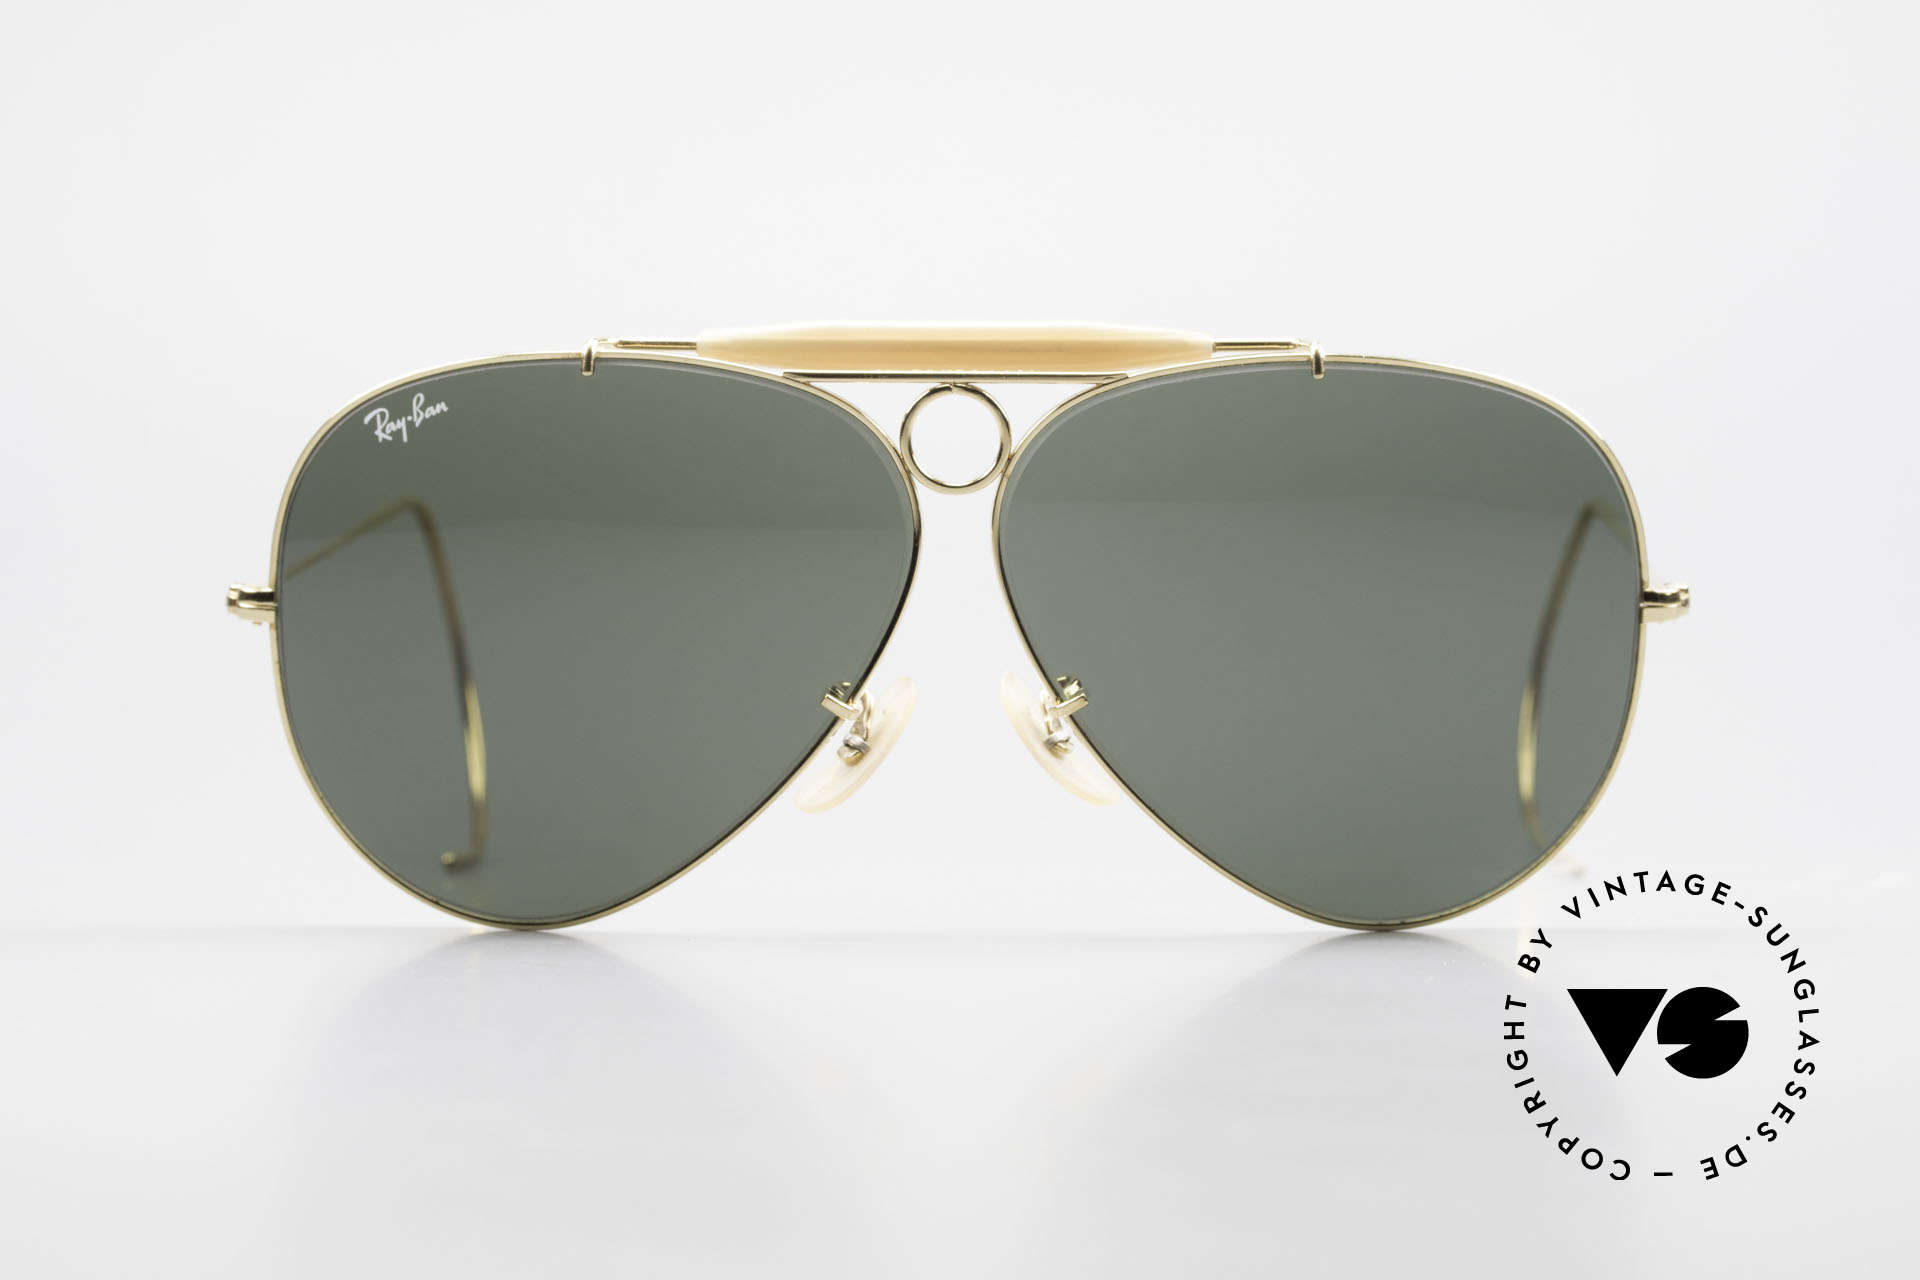 Ray Ban Shooter Sport Sunglass Classic Made in USA, the sunglass classic par excellence in 62mm size, Made for Men